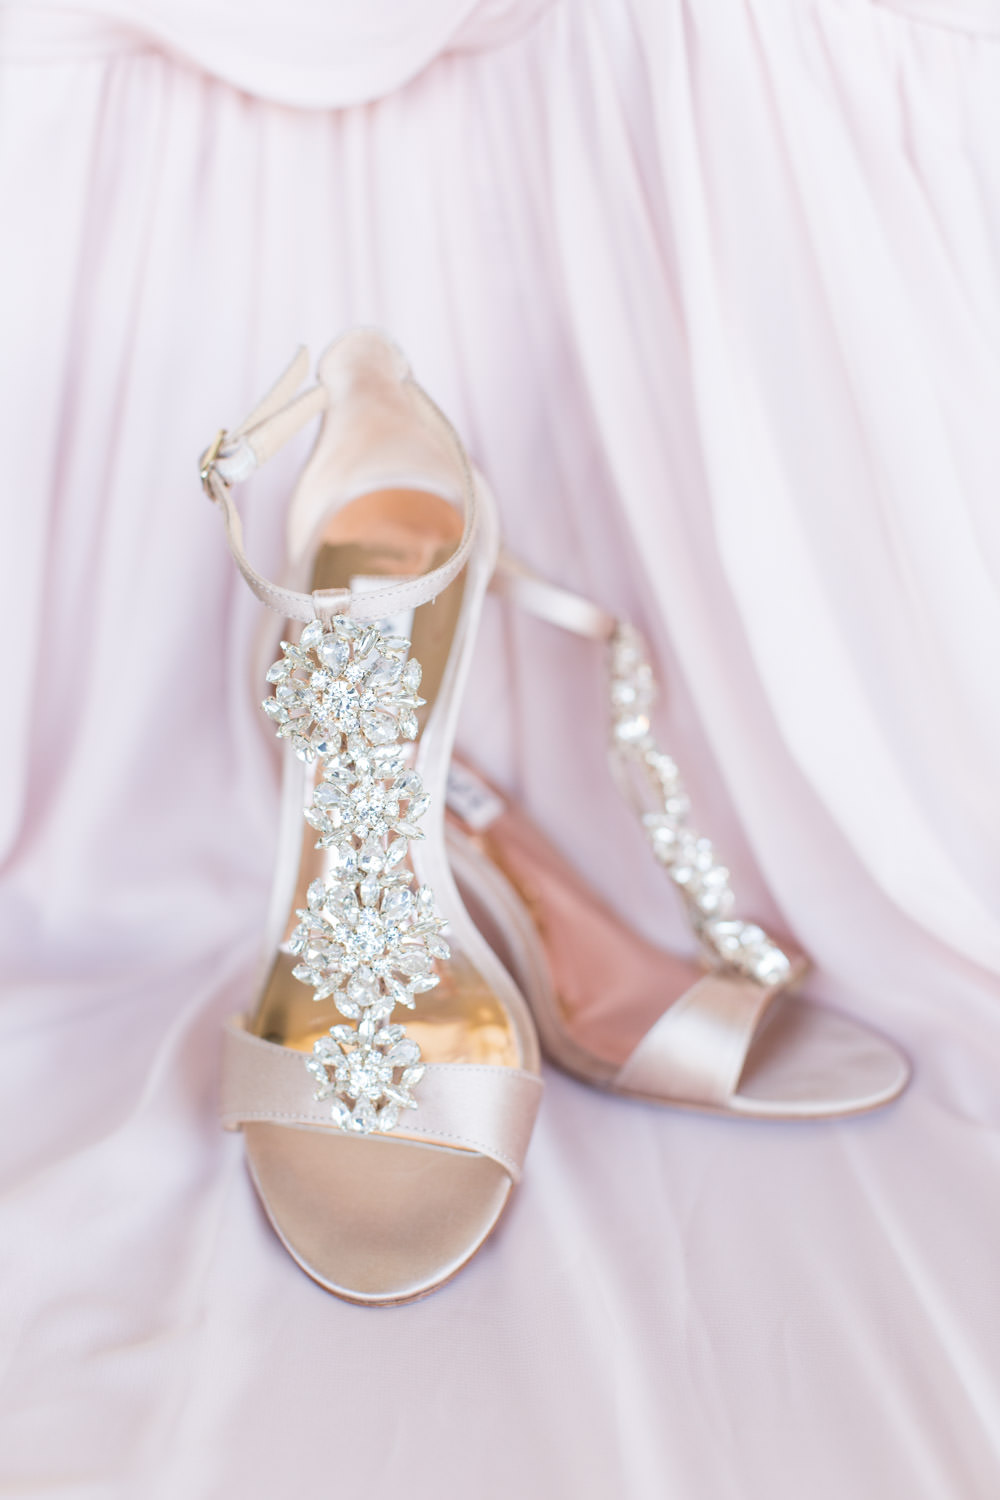 Rose gold wedding wedges with jewels, Cavin Elizabeth Photography